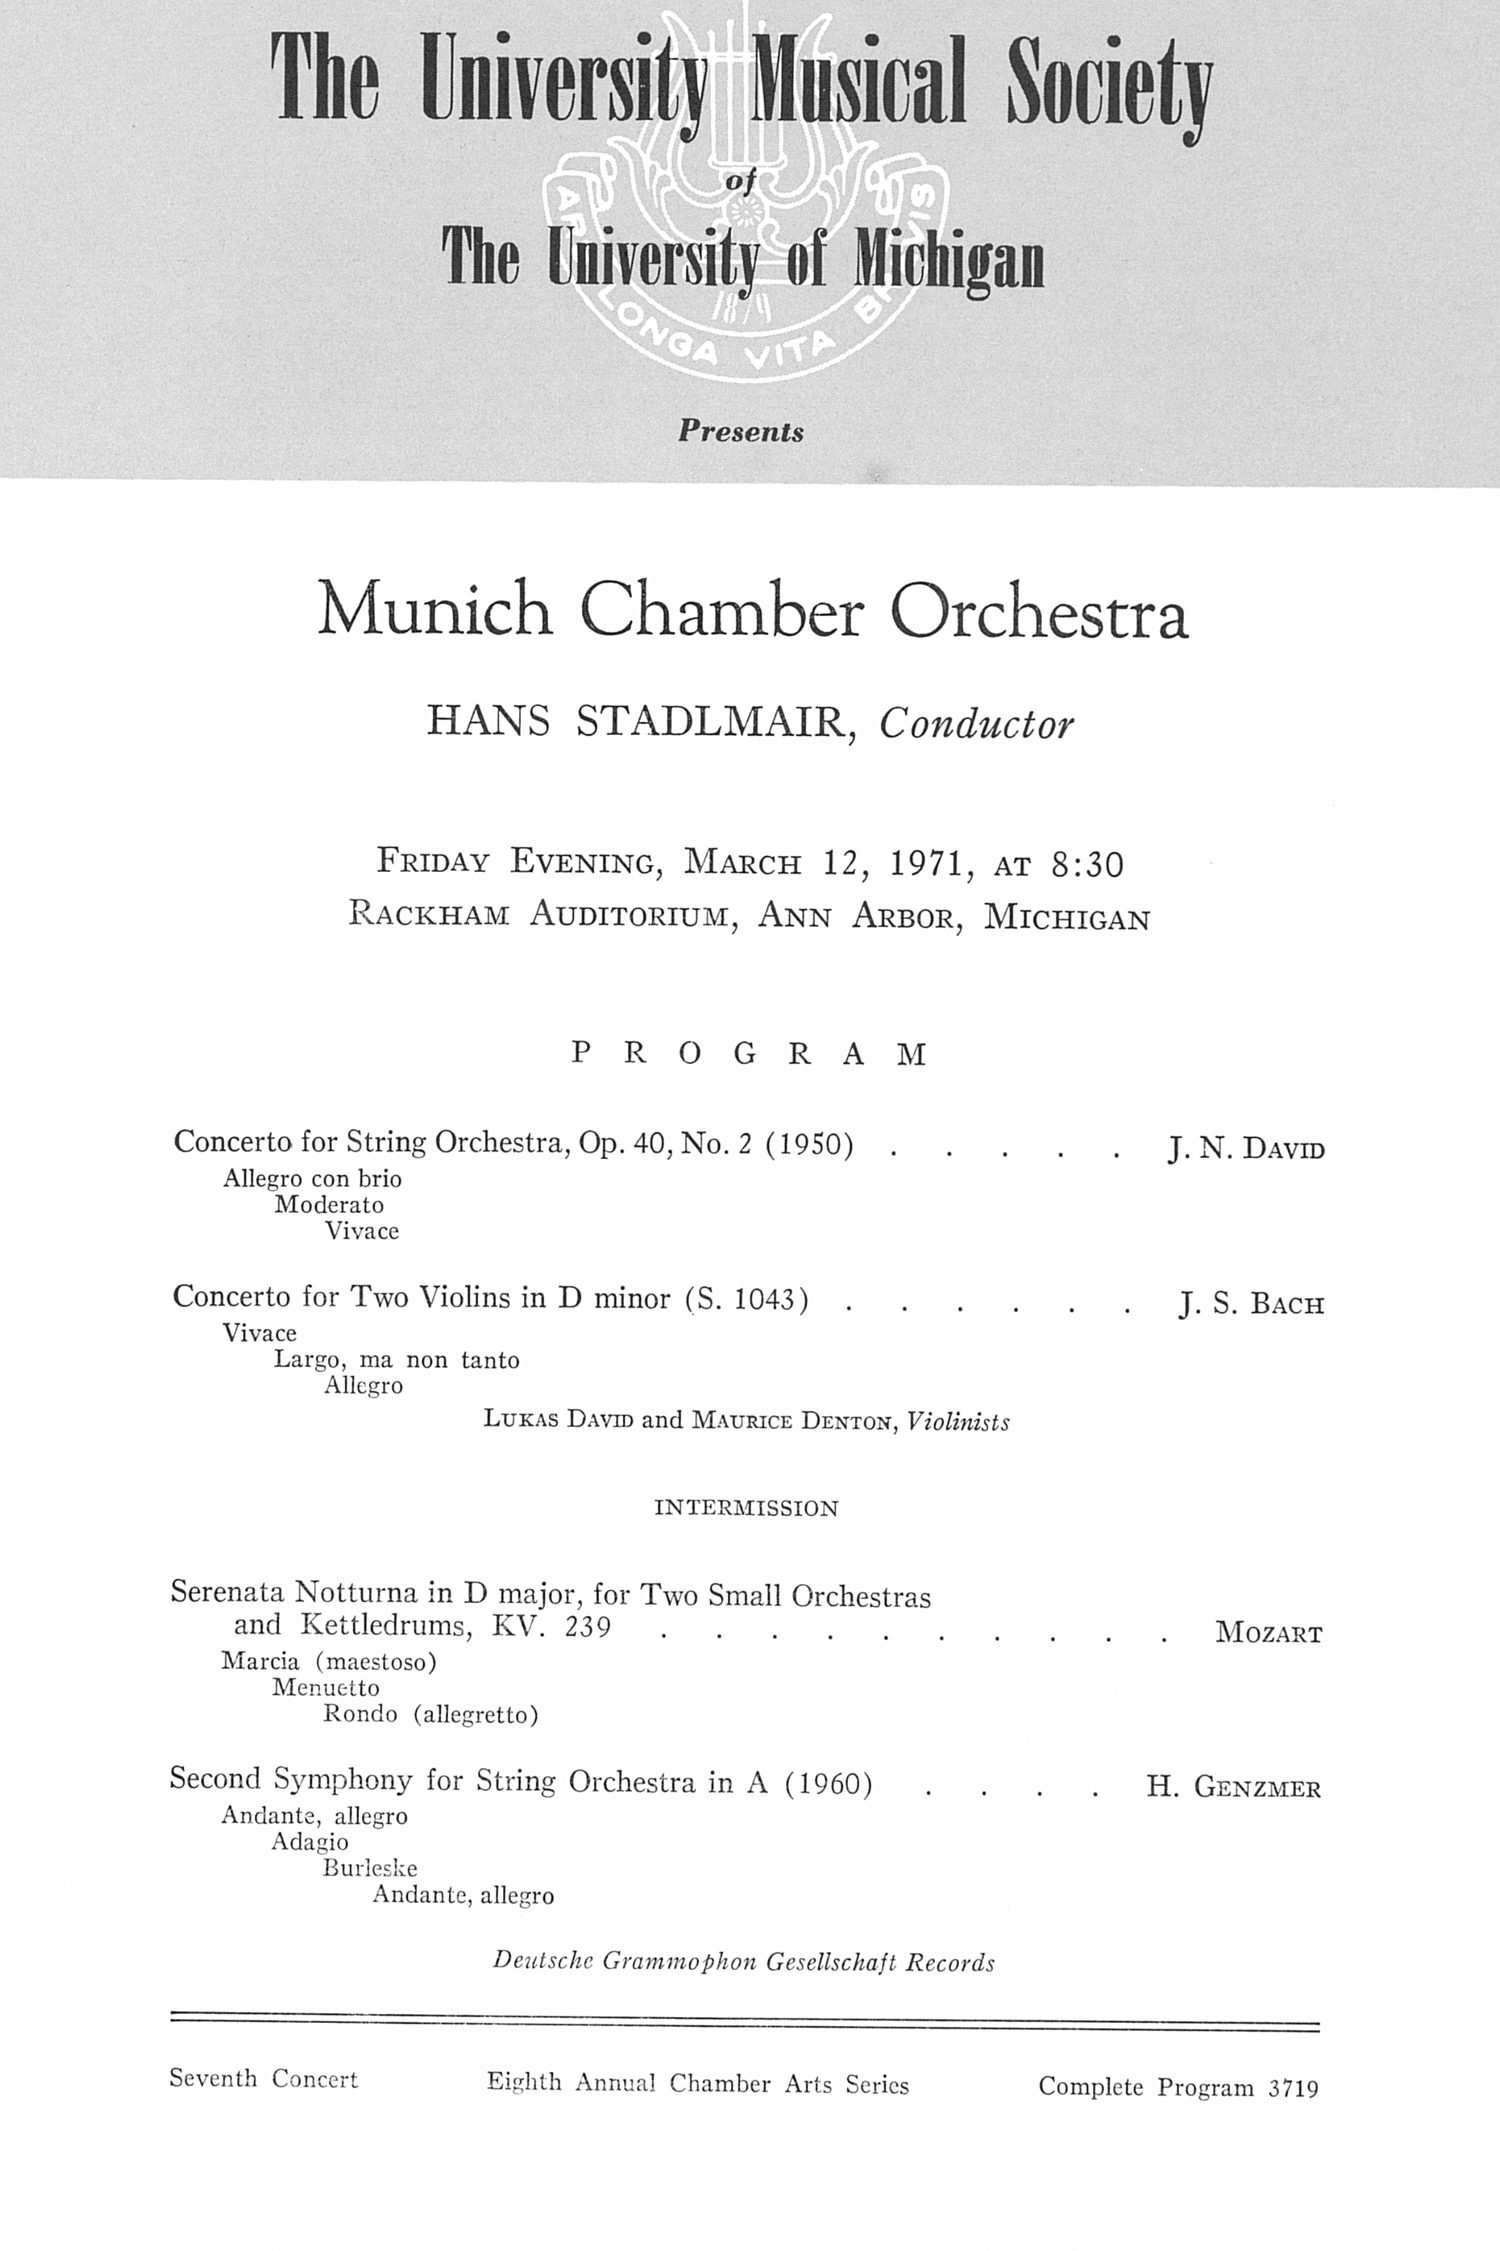 UMS Concert Program, March 12, 1971: Munich Chamber Orchestra --  image